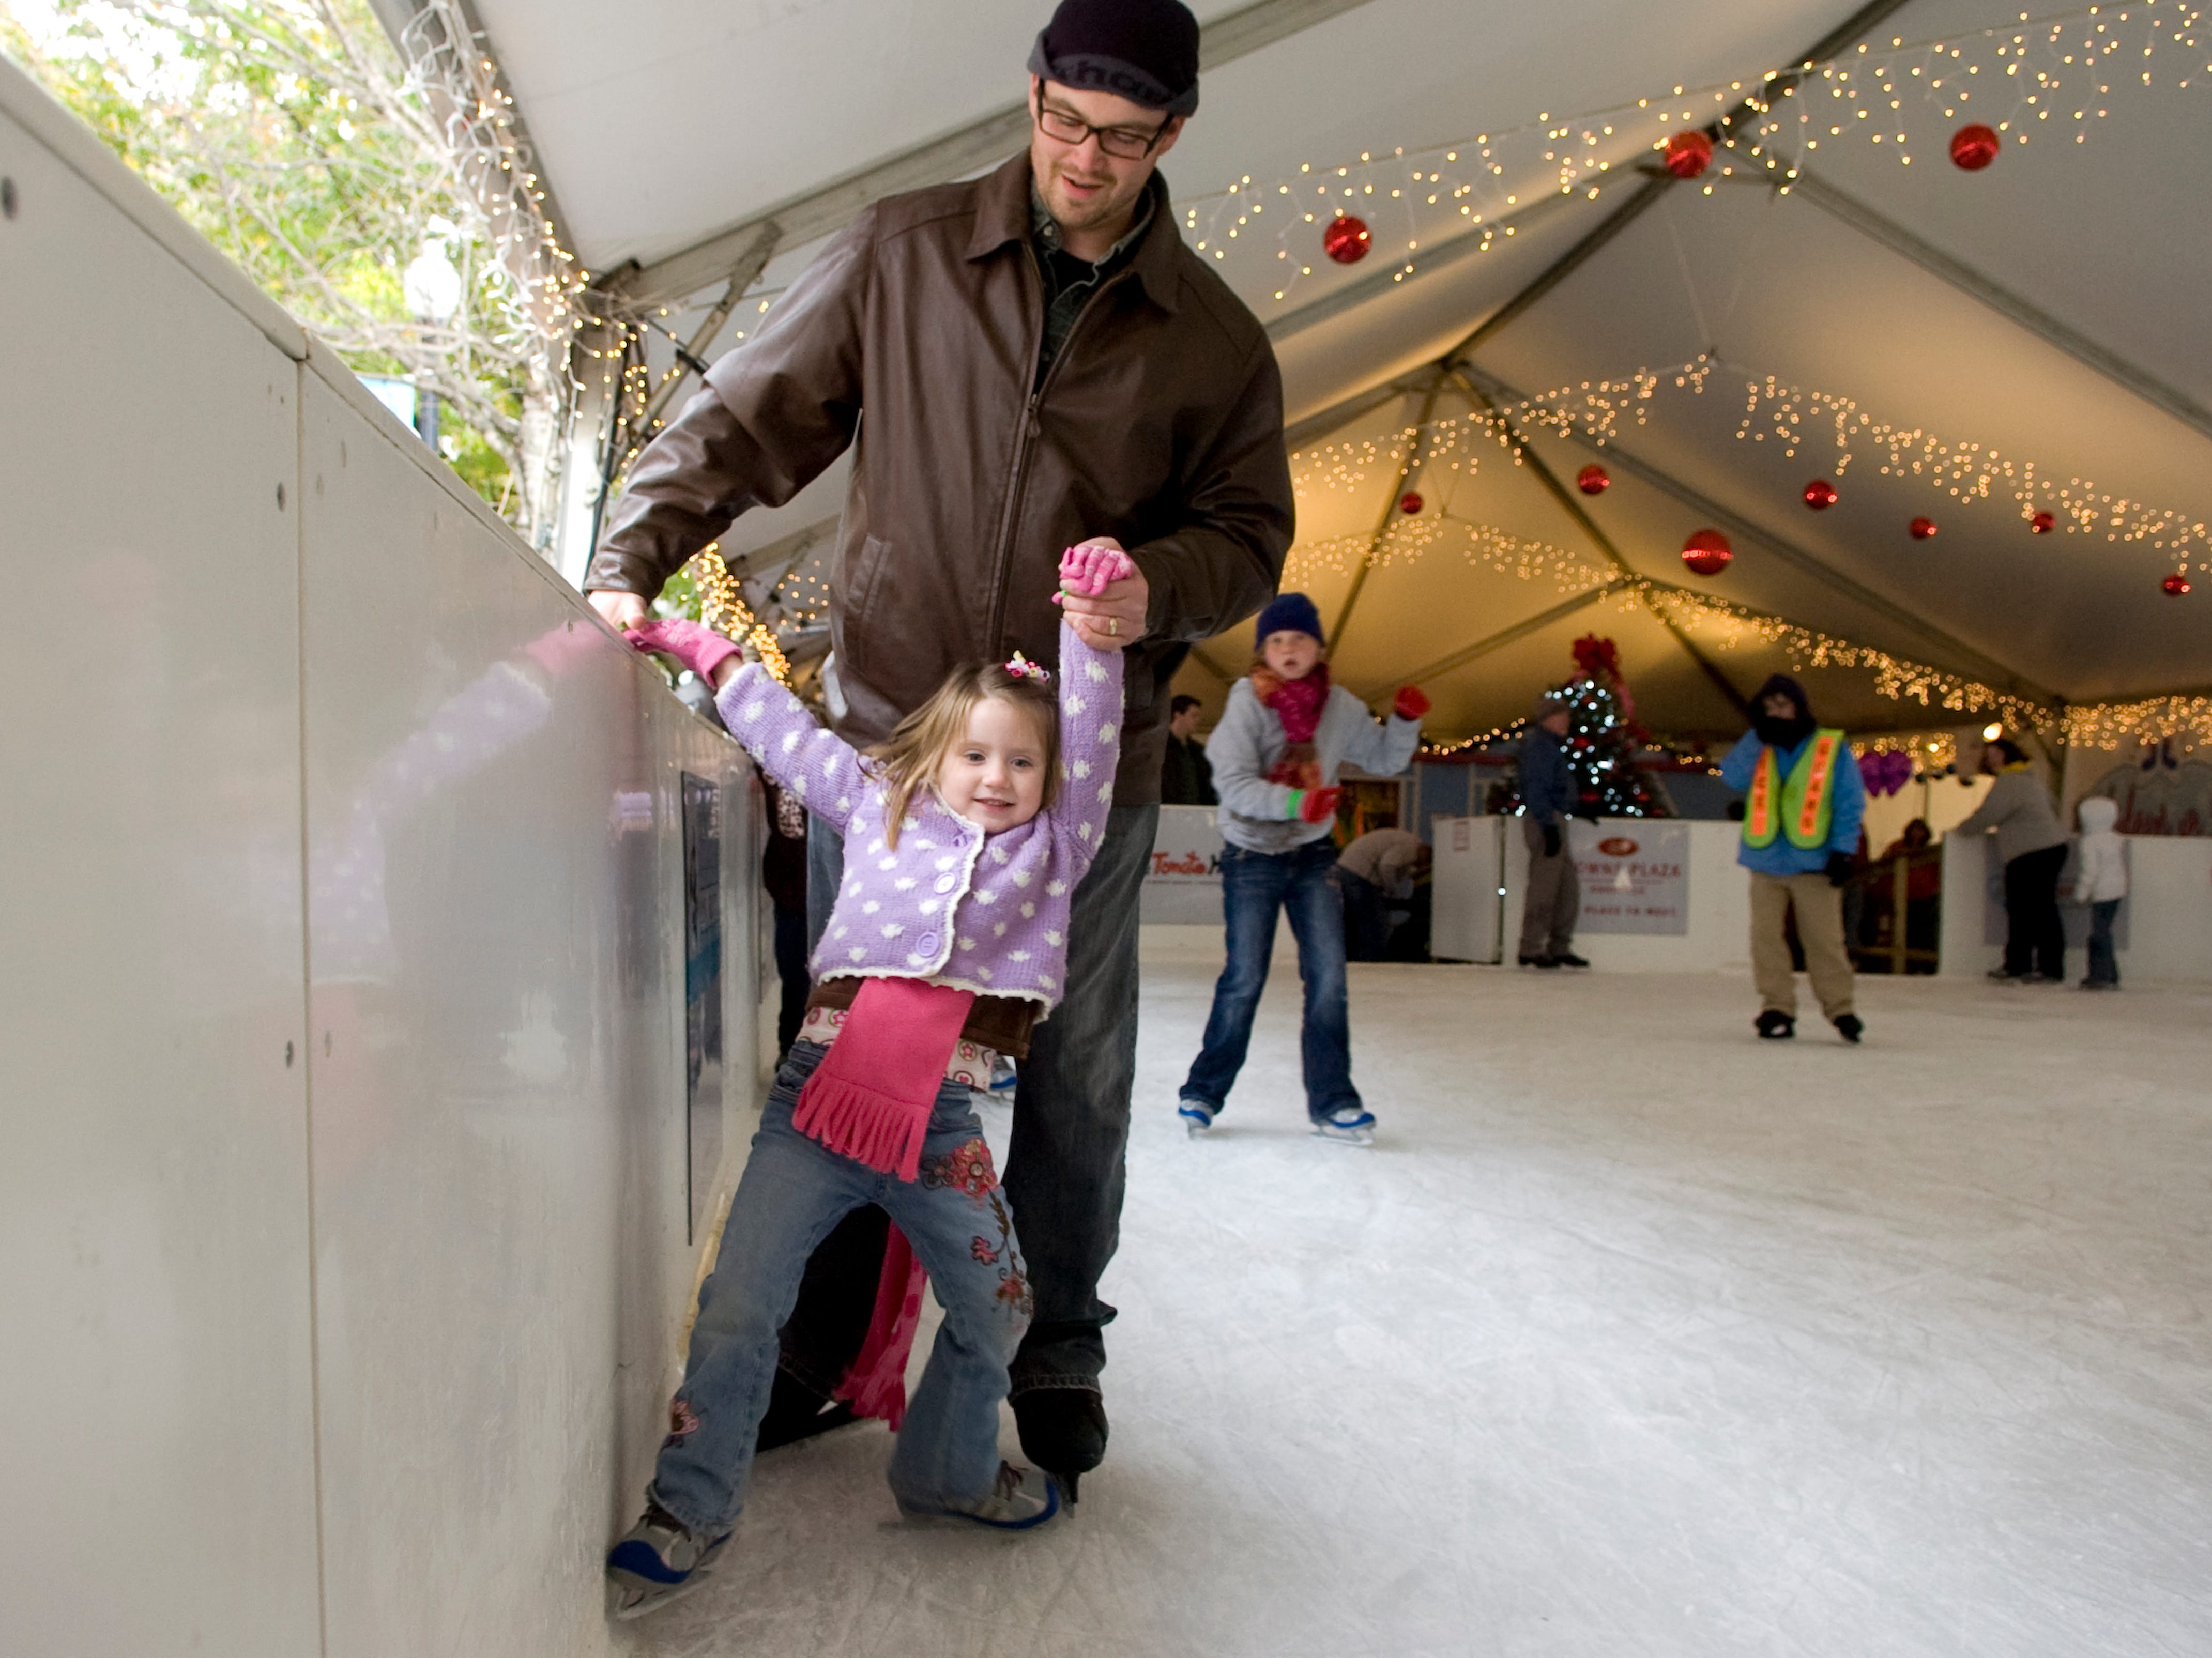 Anthony Johnson helps his daughter Rylee, 4, keep her balance  while ice skating at Knoxville's Holiday on Ice skating on Friday, November 26, 2010.